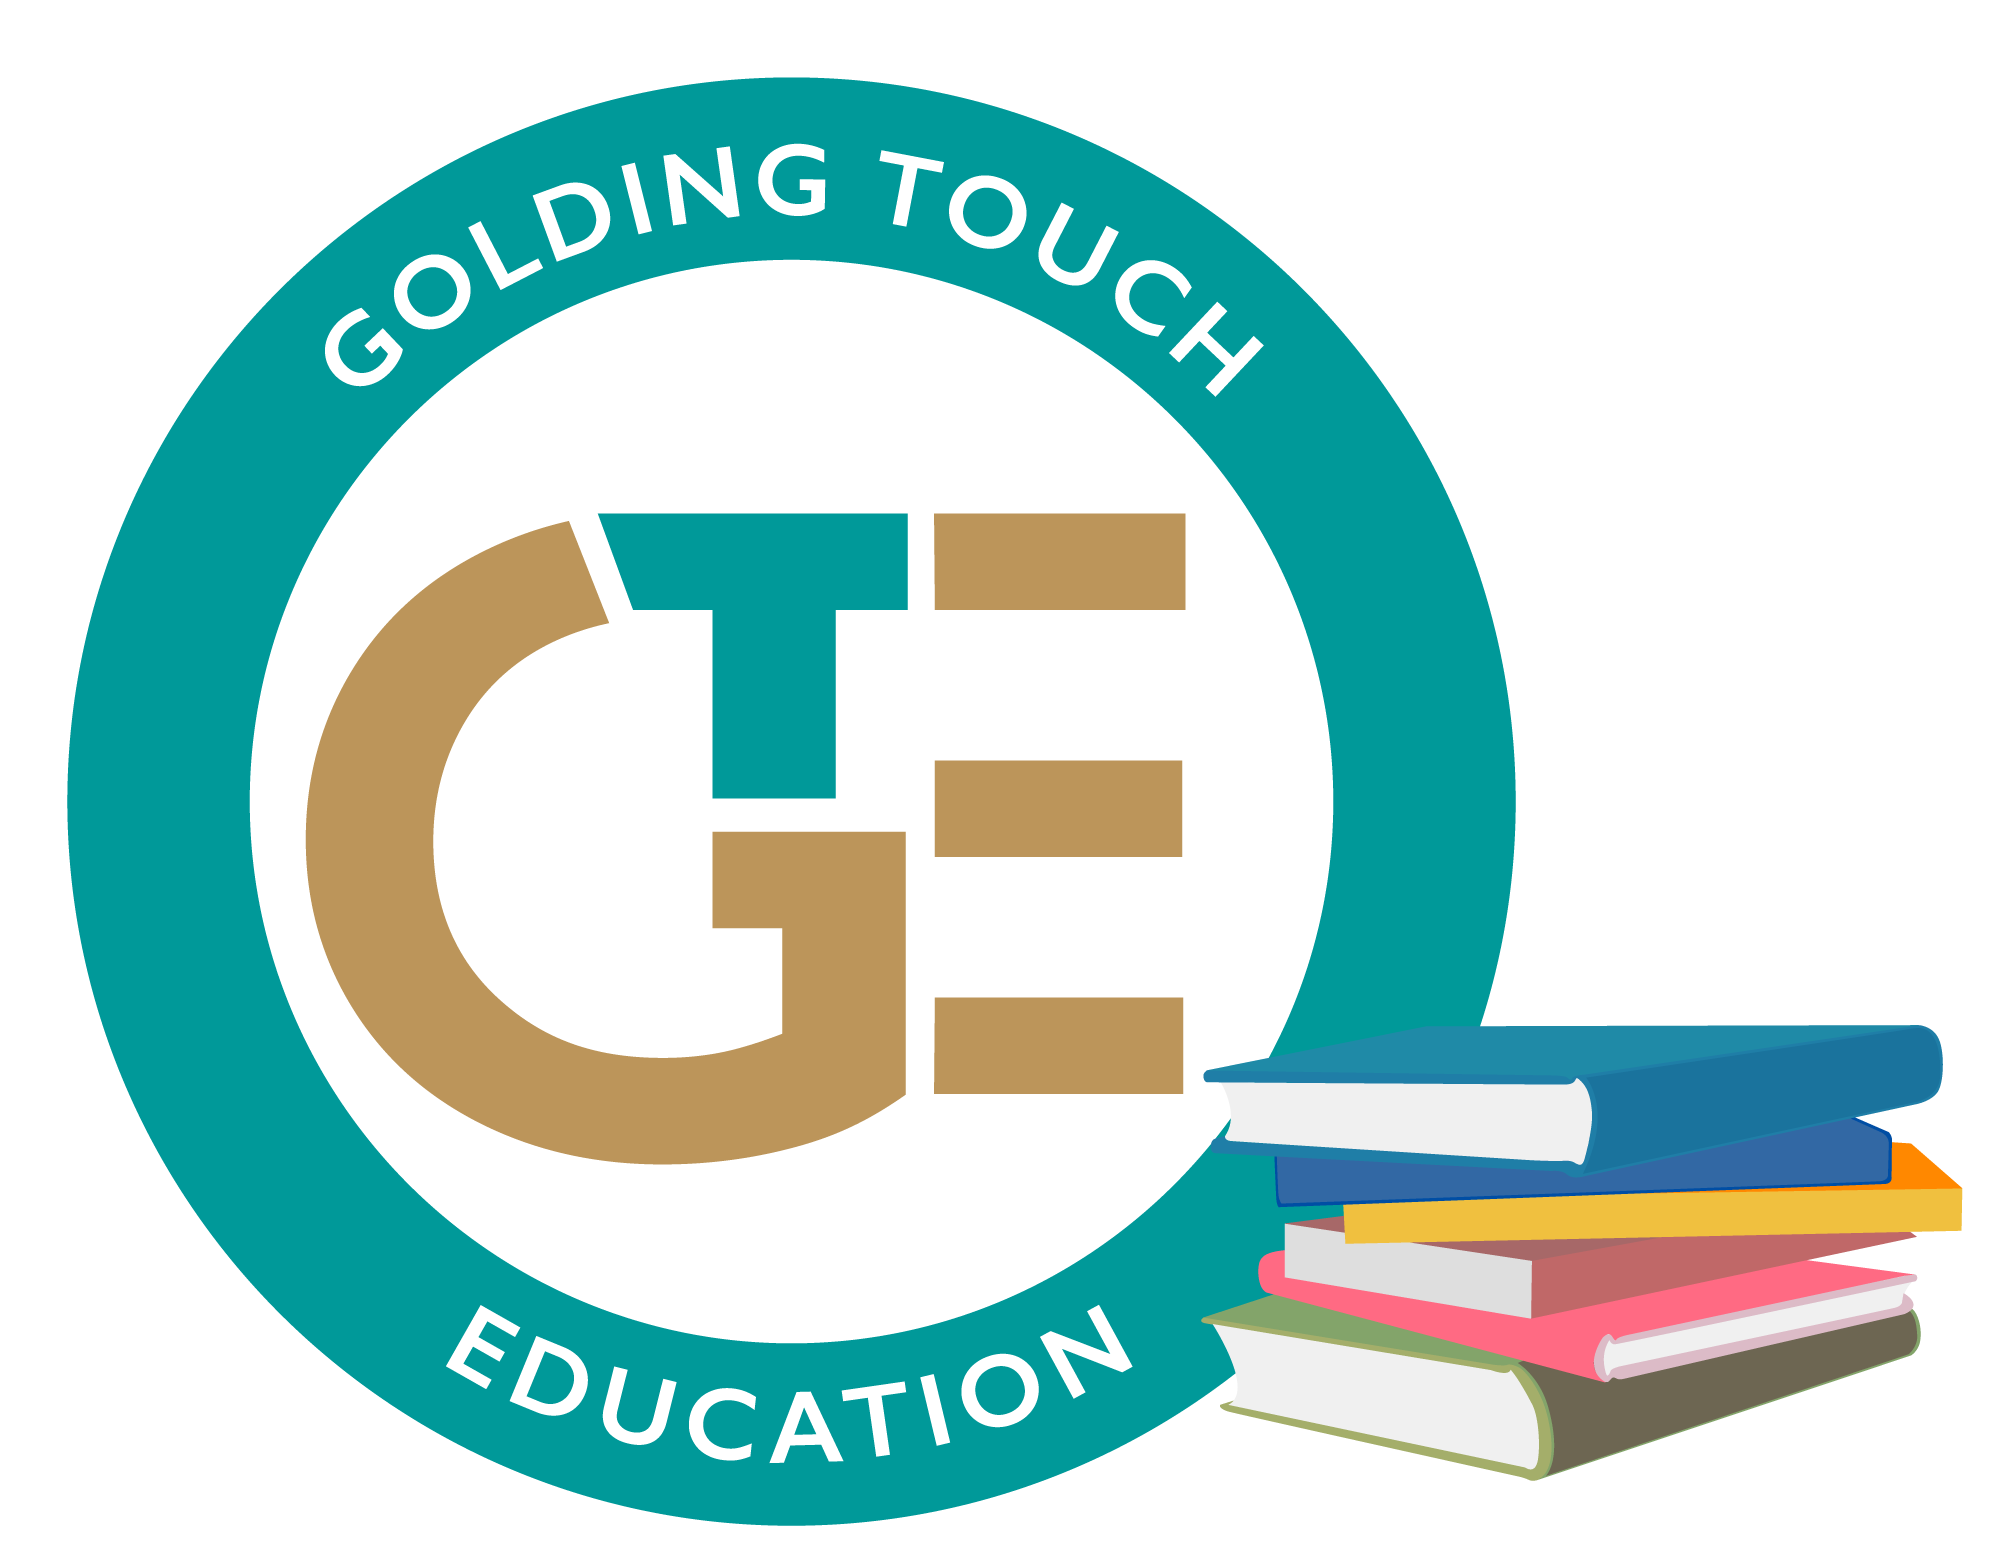 GOLDING TOUCH EDUCATION CONSULTING LLC